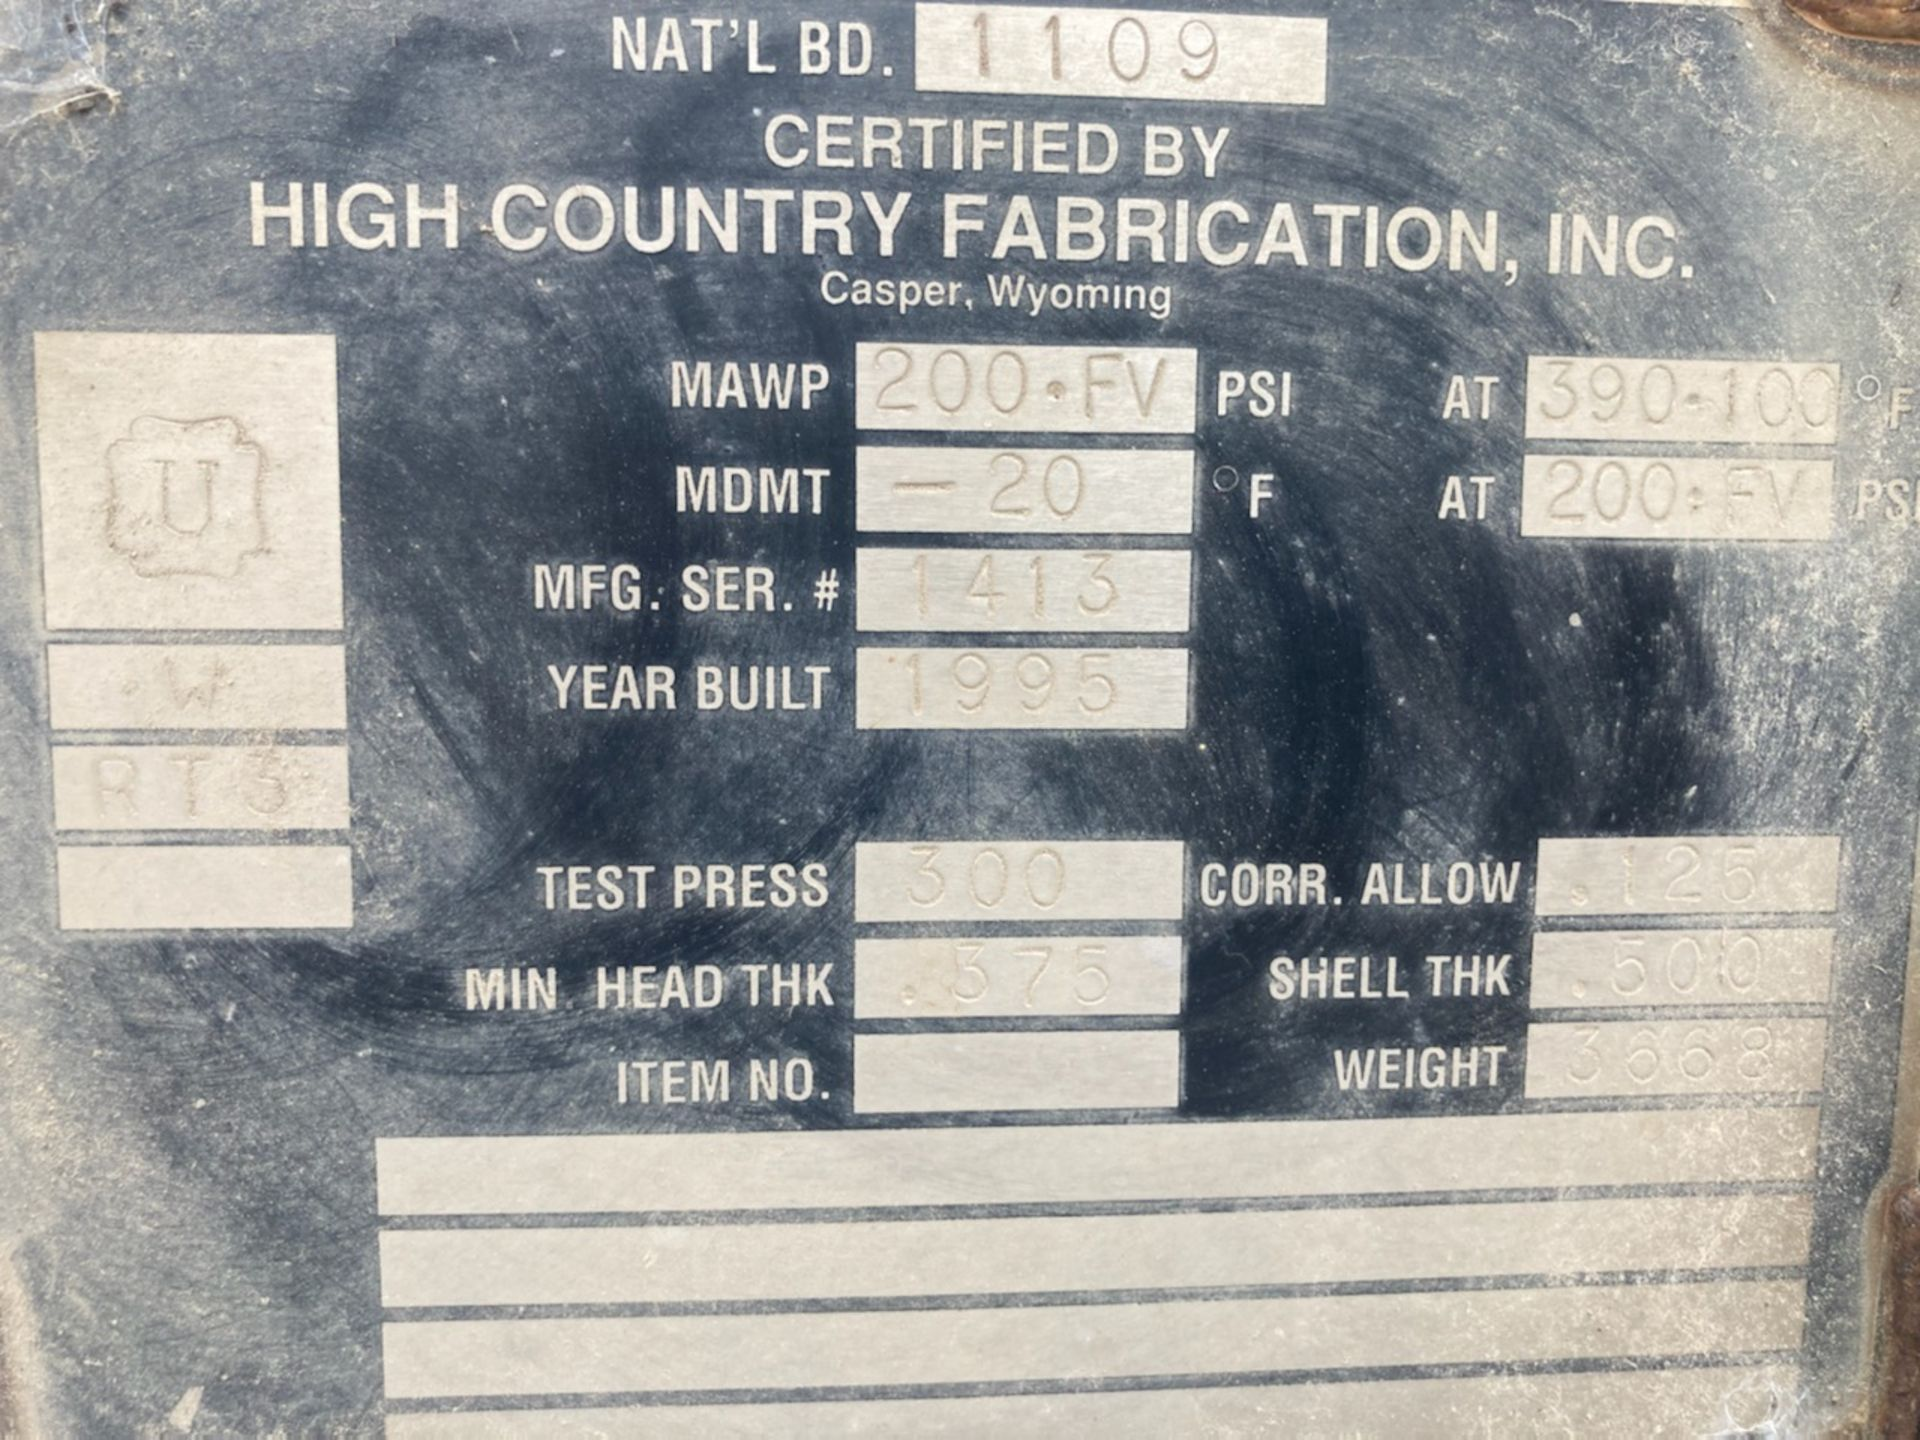 High Country Fabrication Tank National Board Number 1109 - Approximate 500 Gallons - Image 2 of 2